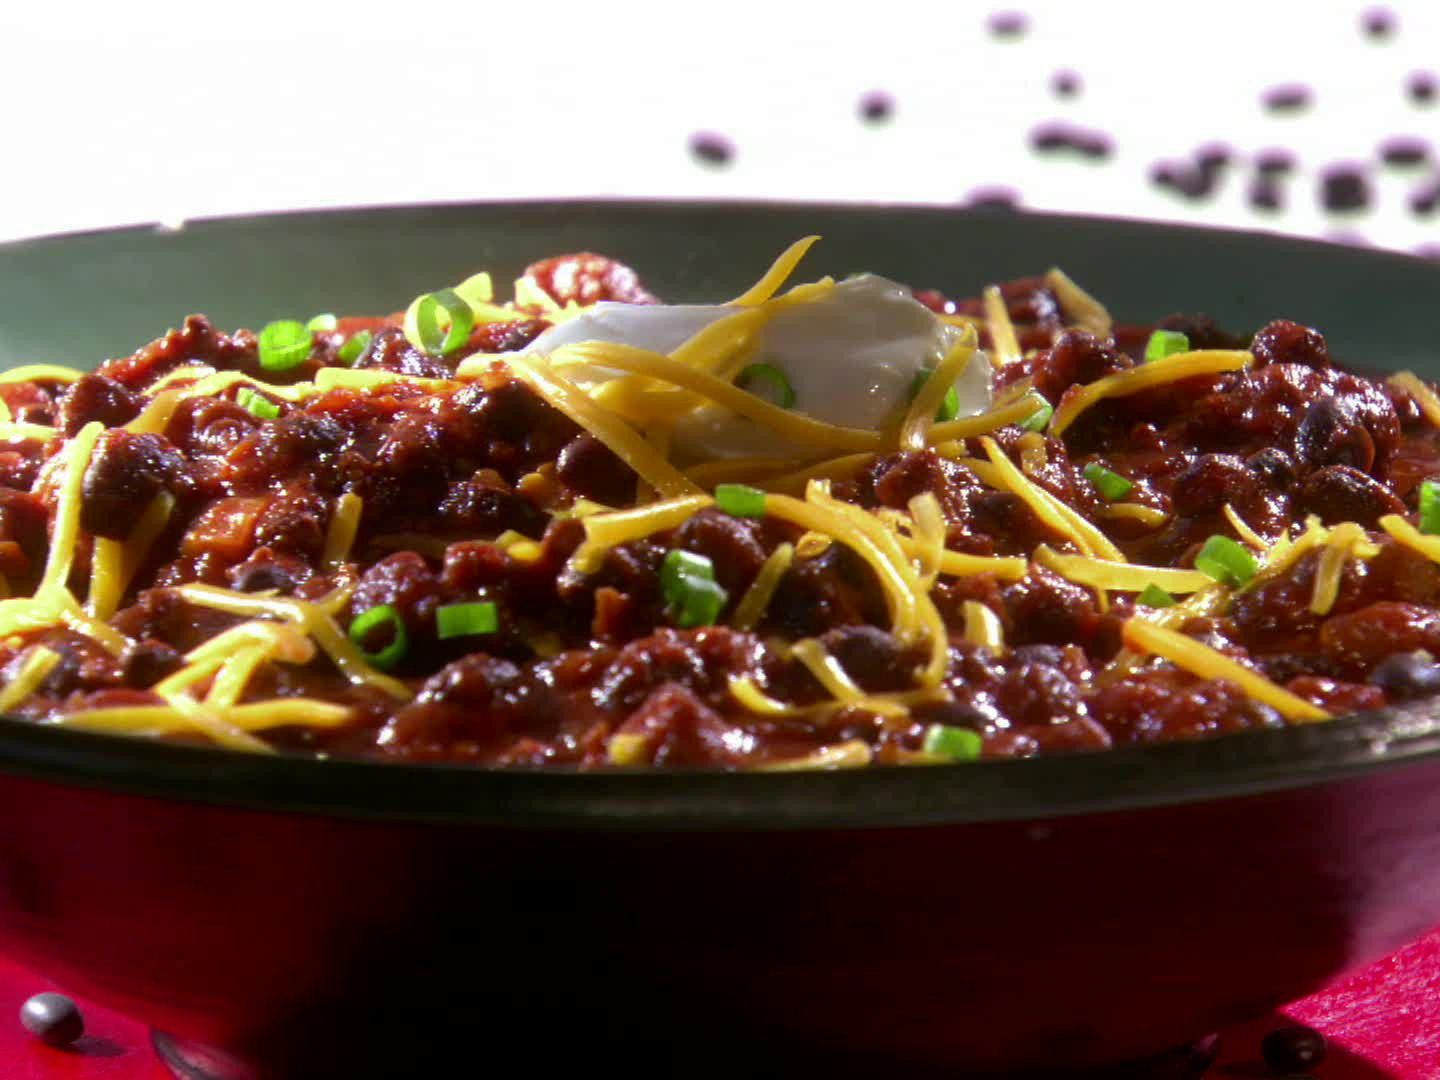 Game day chili recipe chili recipes arabian food and gaming forumfinder Image collections